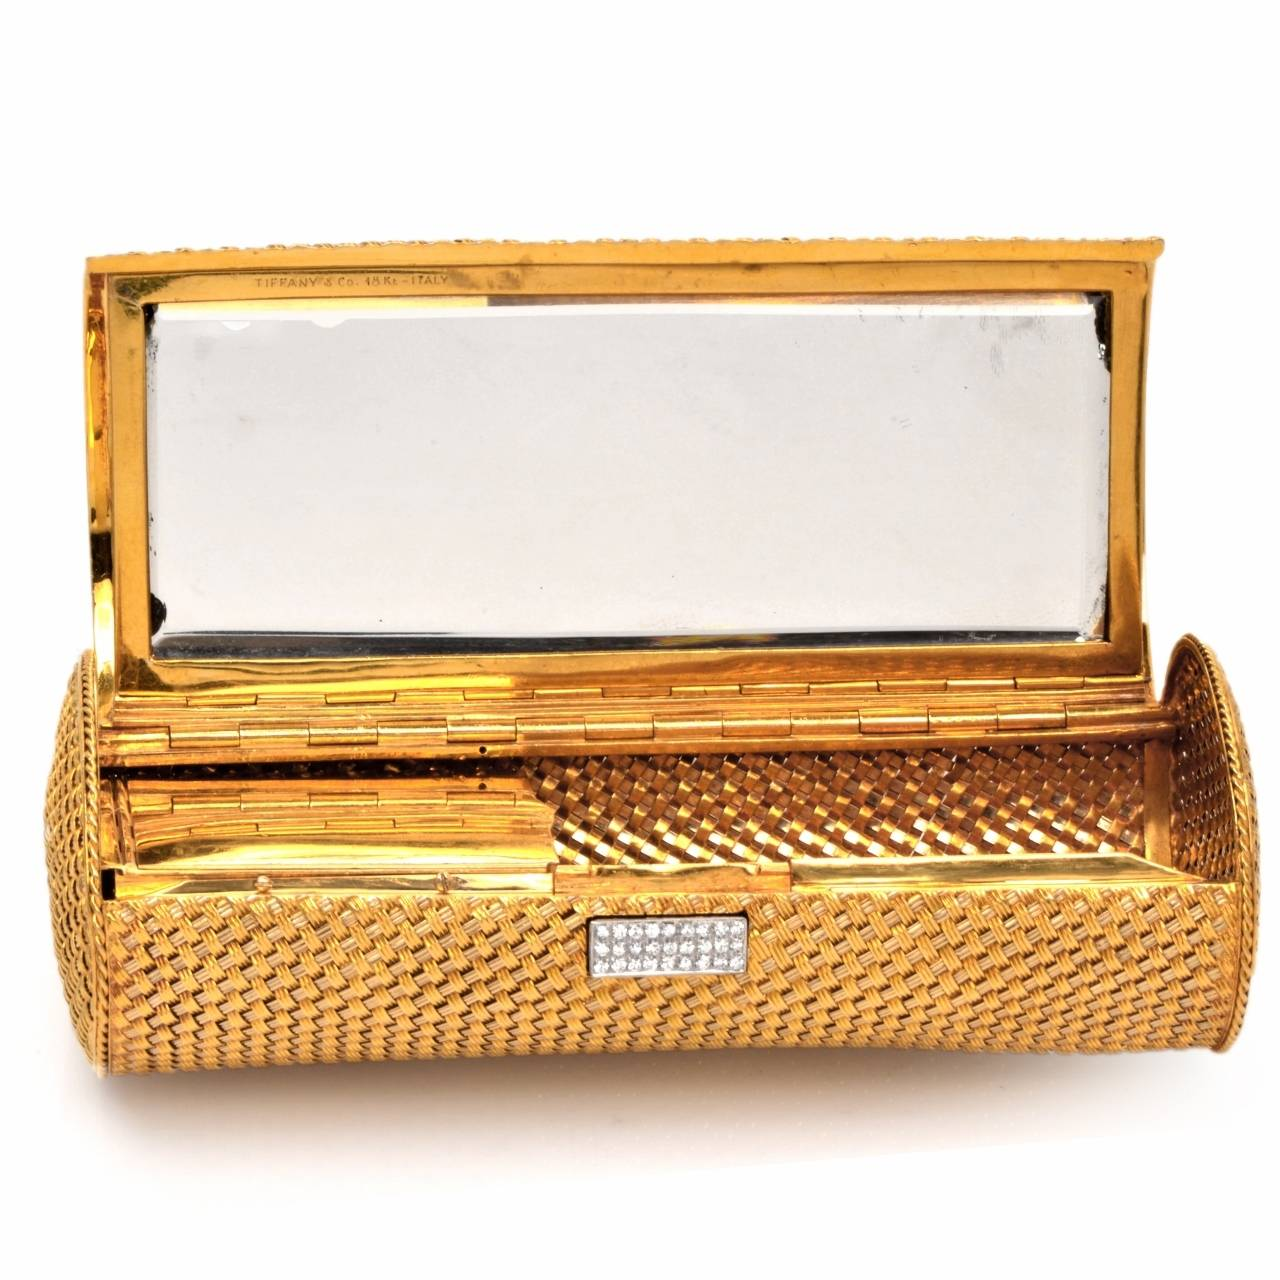 and co yellow gold clutch purse compact